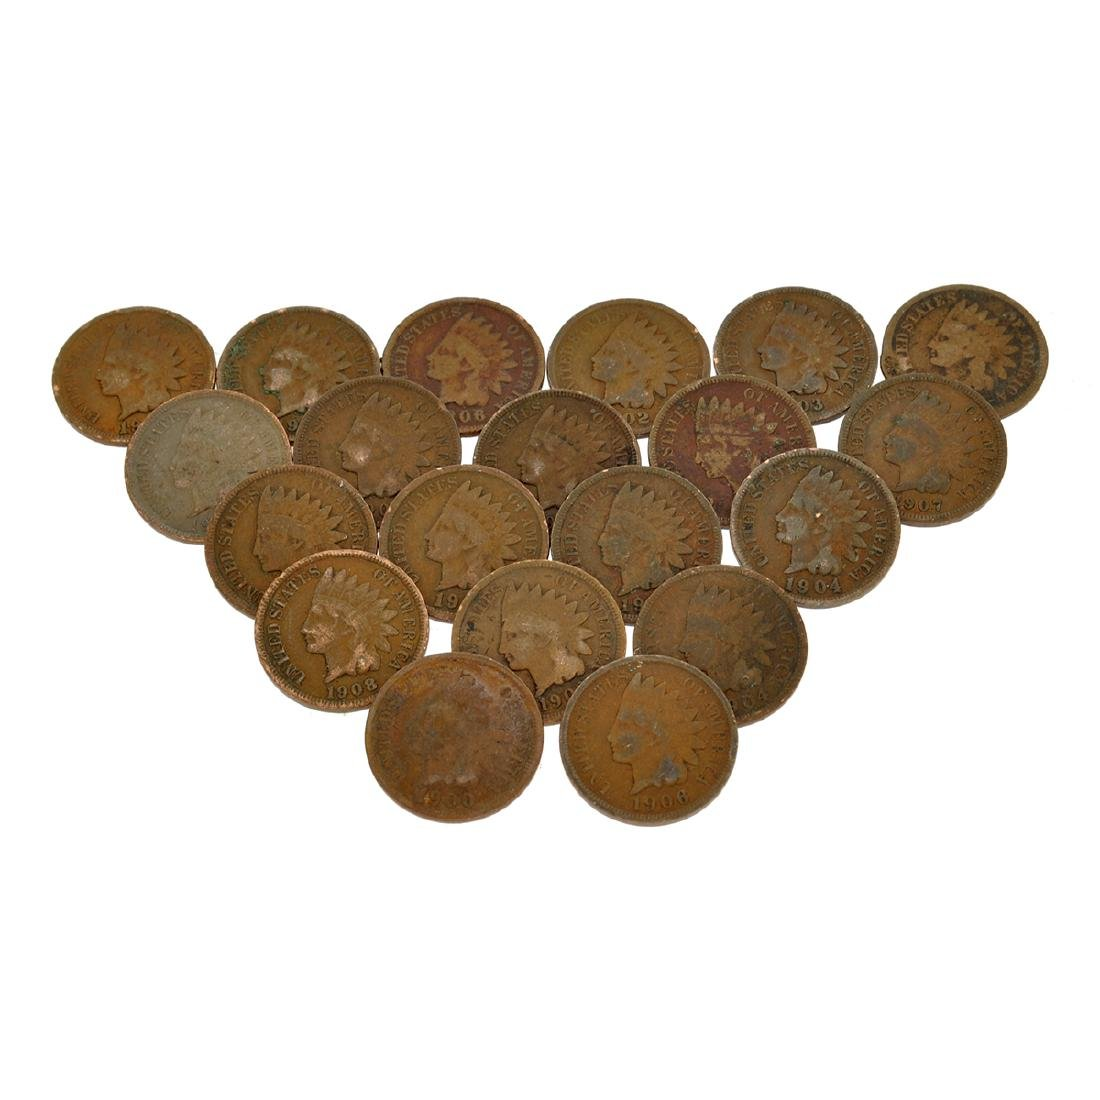 20 Indian Head One Cent Coins